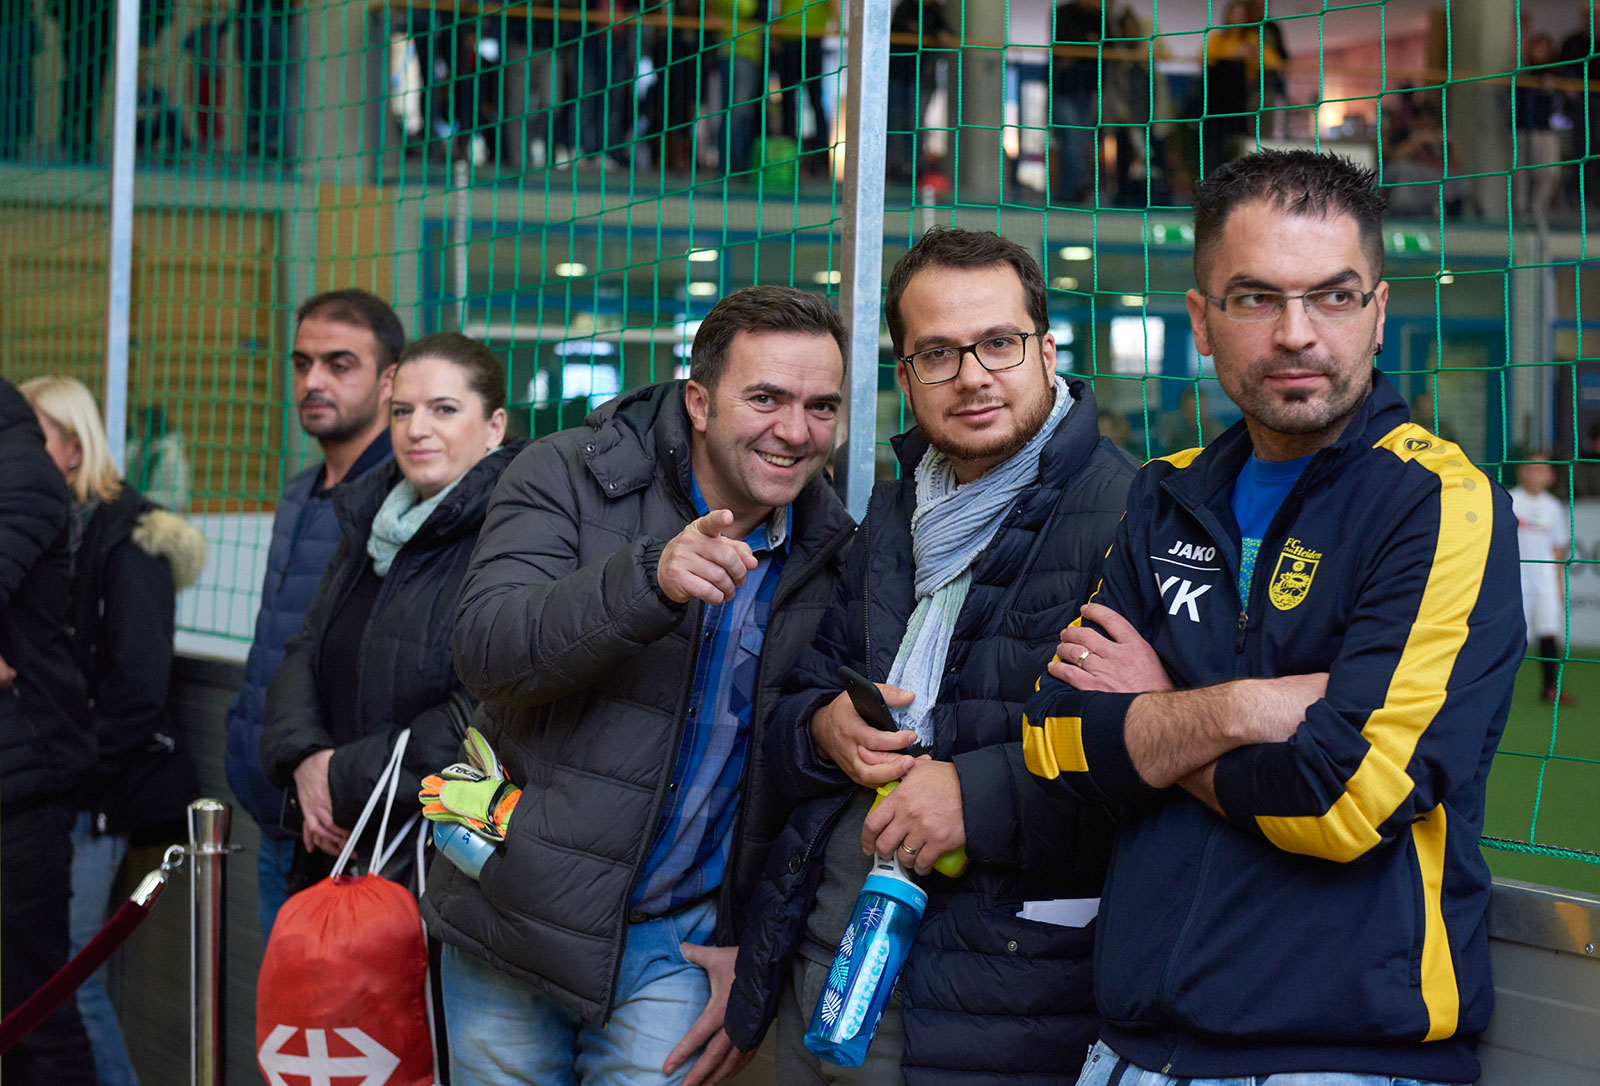 Bodensee-Cup_20171112_113842.jpg